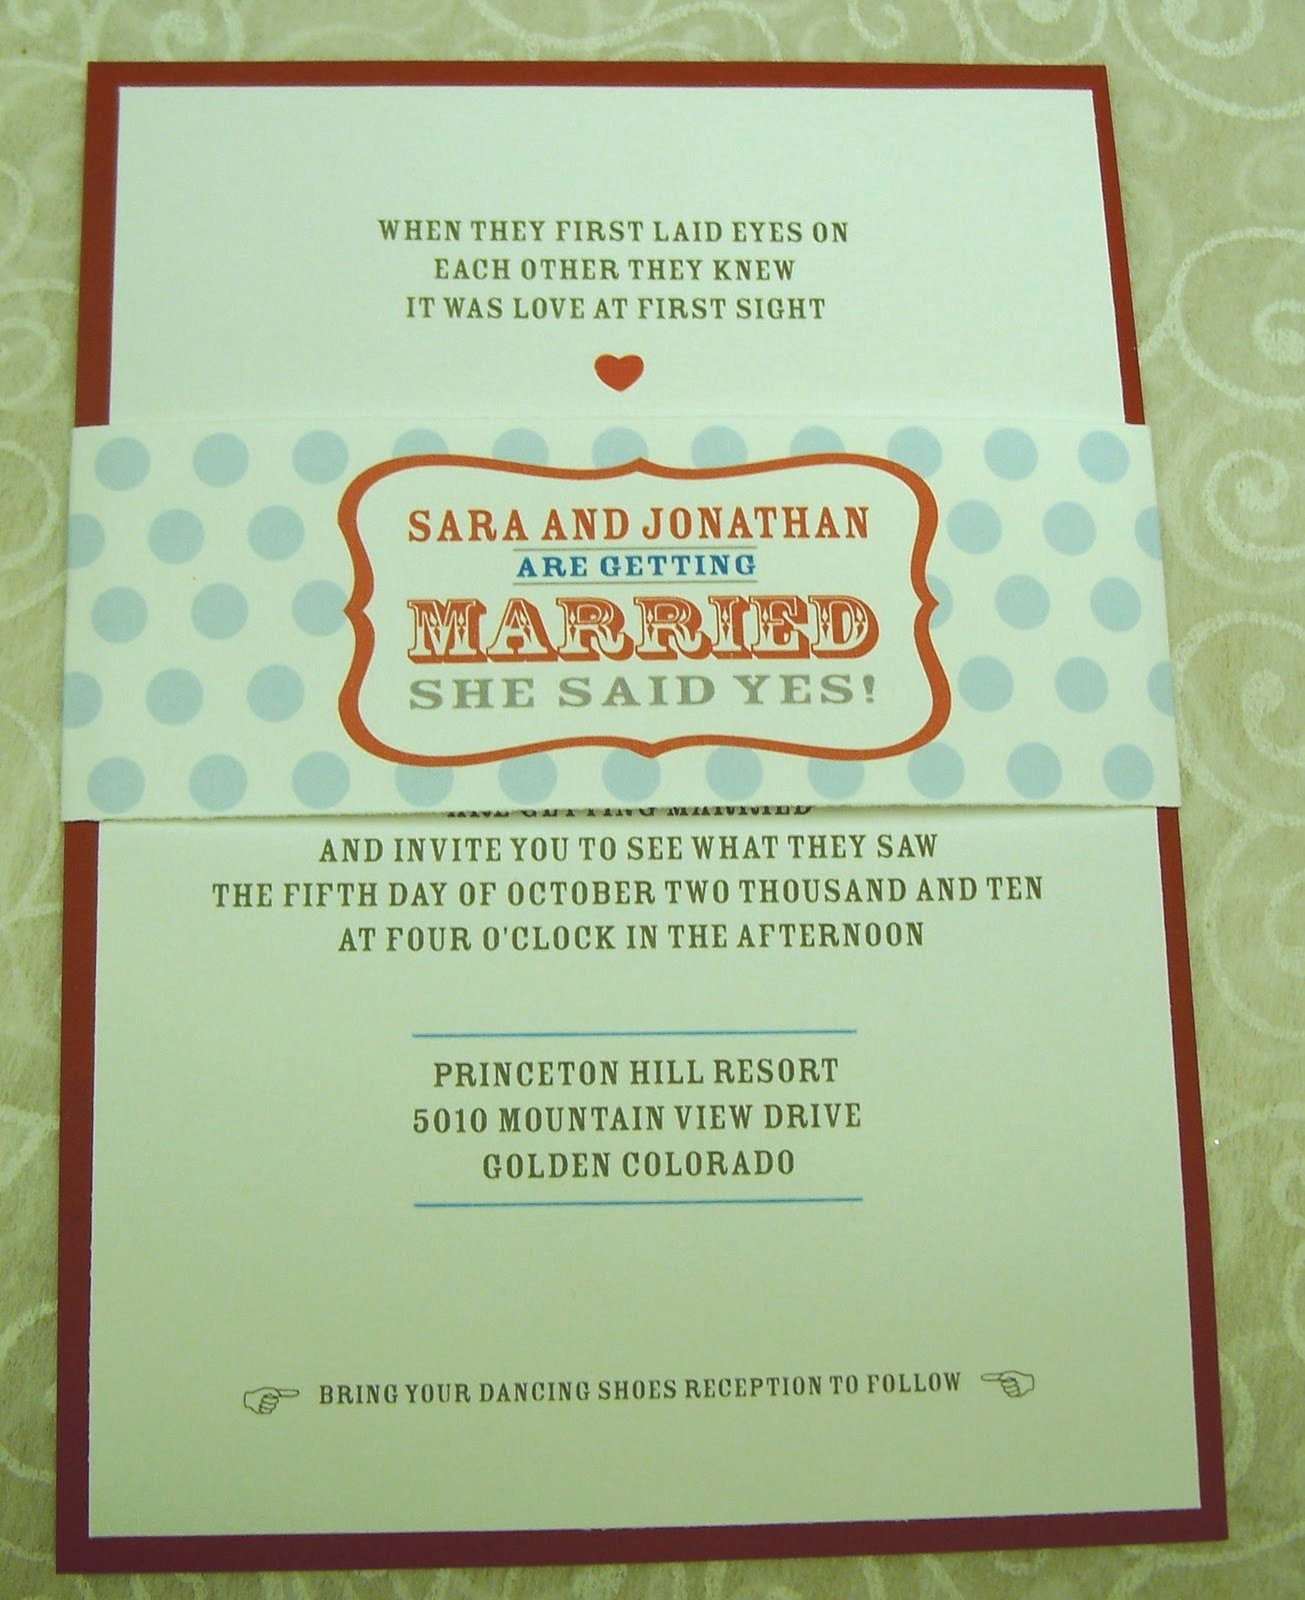 Wedding Invitations Word Template Fresh Ivy Belle Weddings Diy Wedding Projects and Ideas for